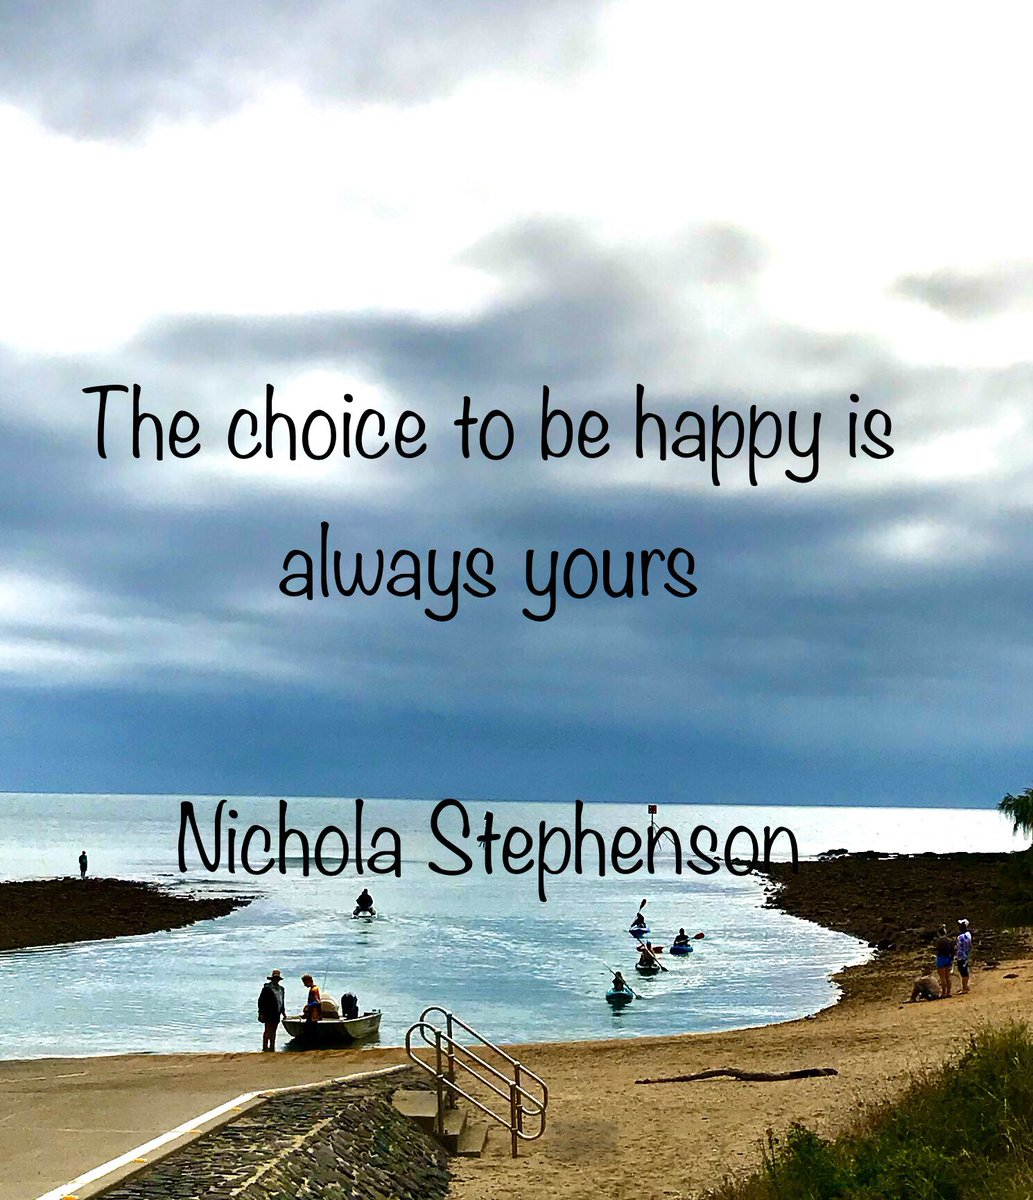 The choice to be happy is always yours  #happy #happiness #quote #quotes #mindset #choice #JoyTrain #ThinkBIGSundayWithMarshapic.twitter.com/QafGEbPGJu